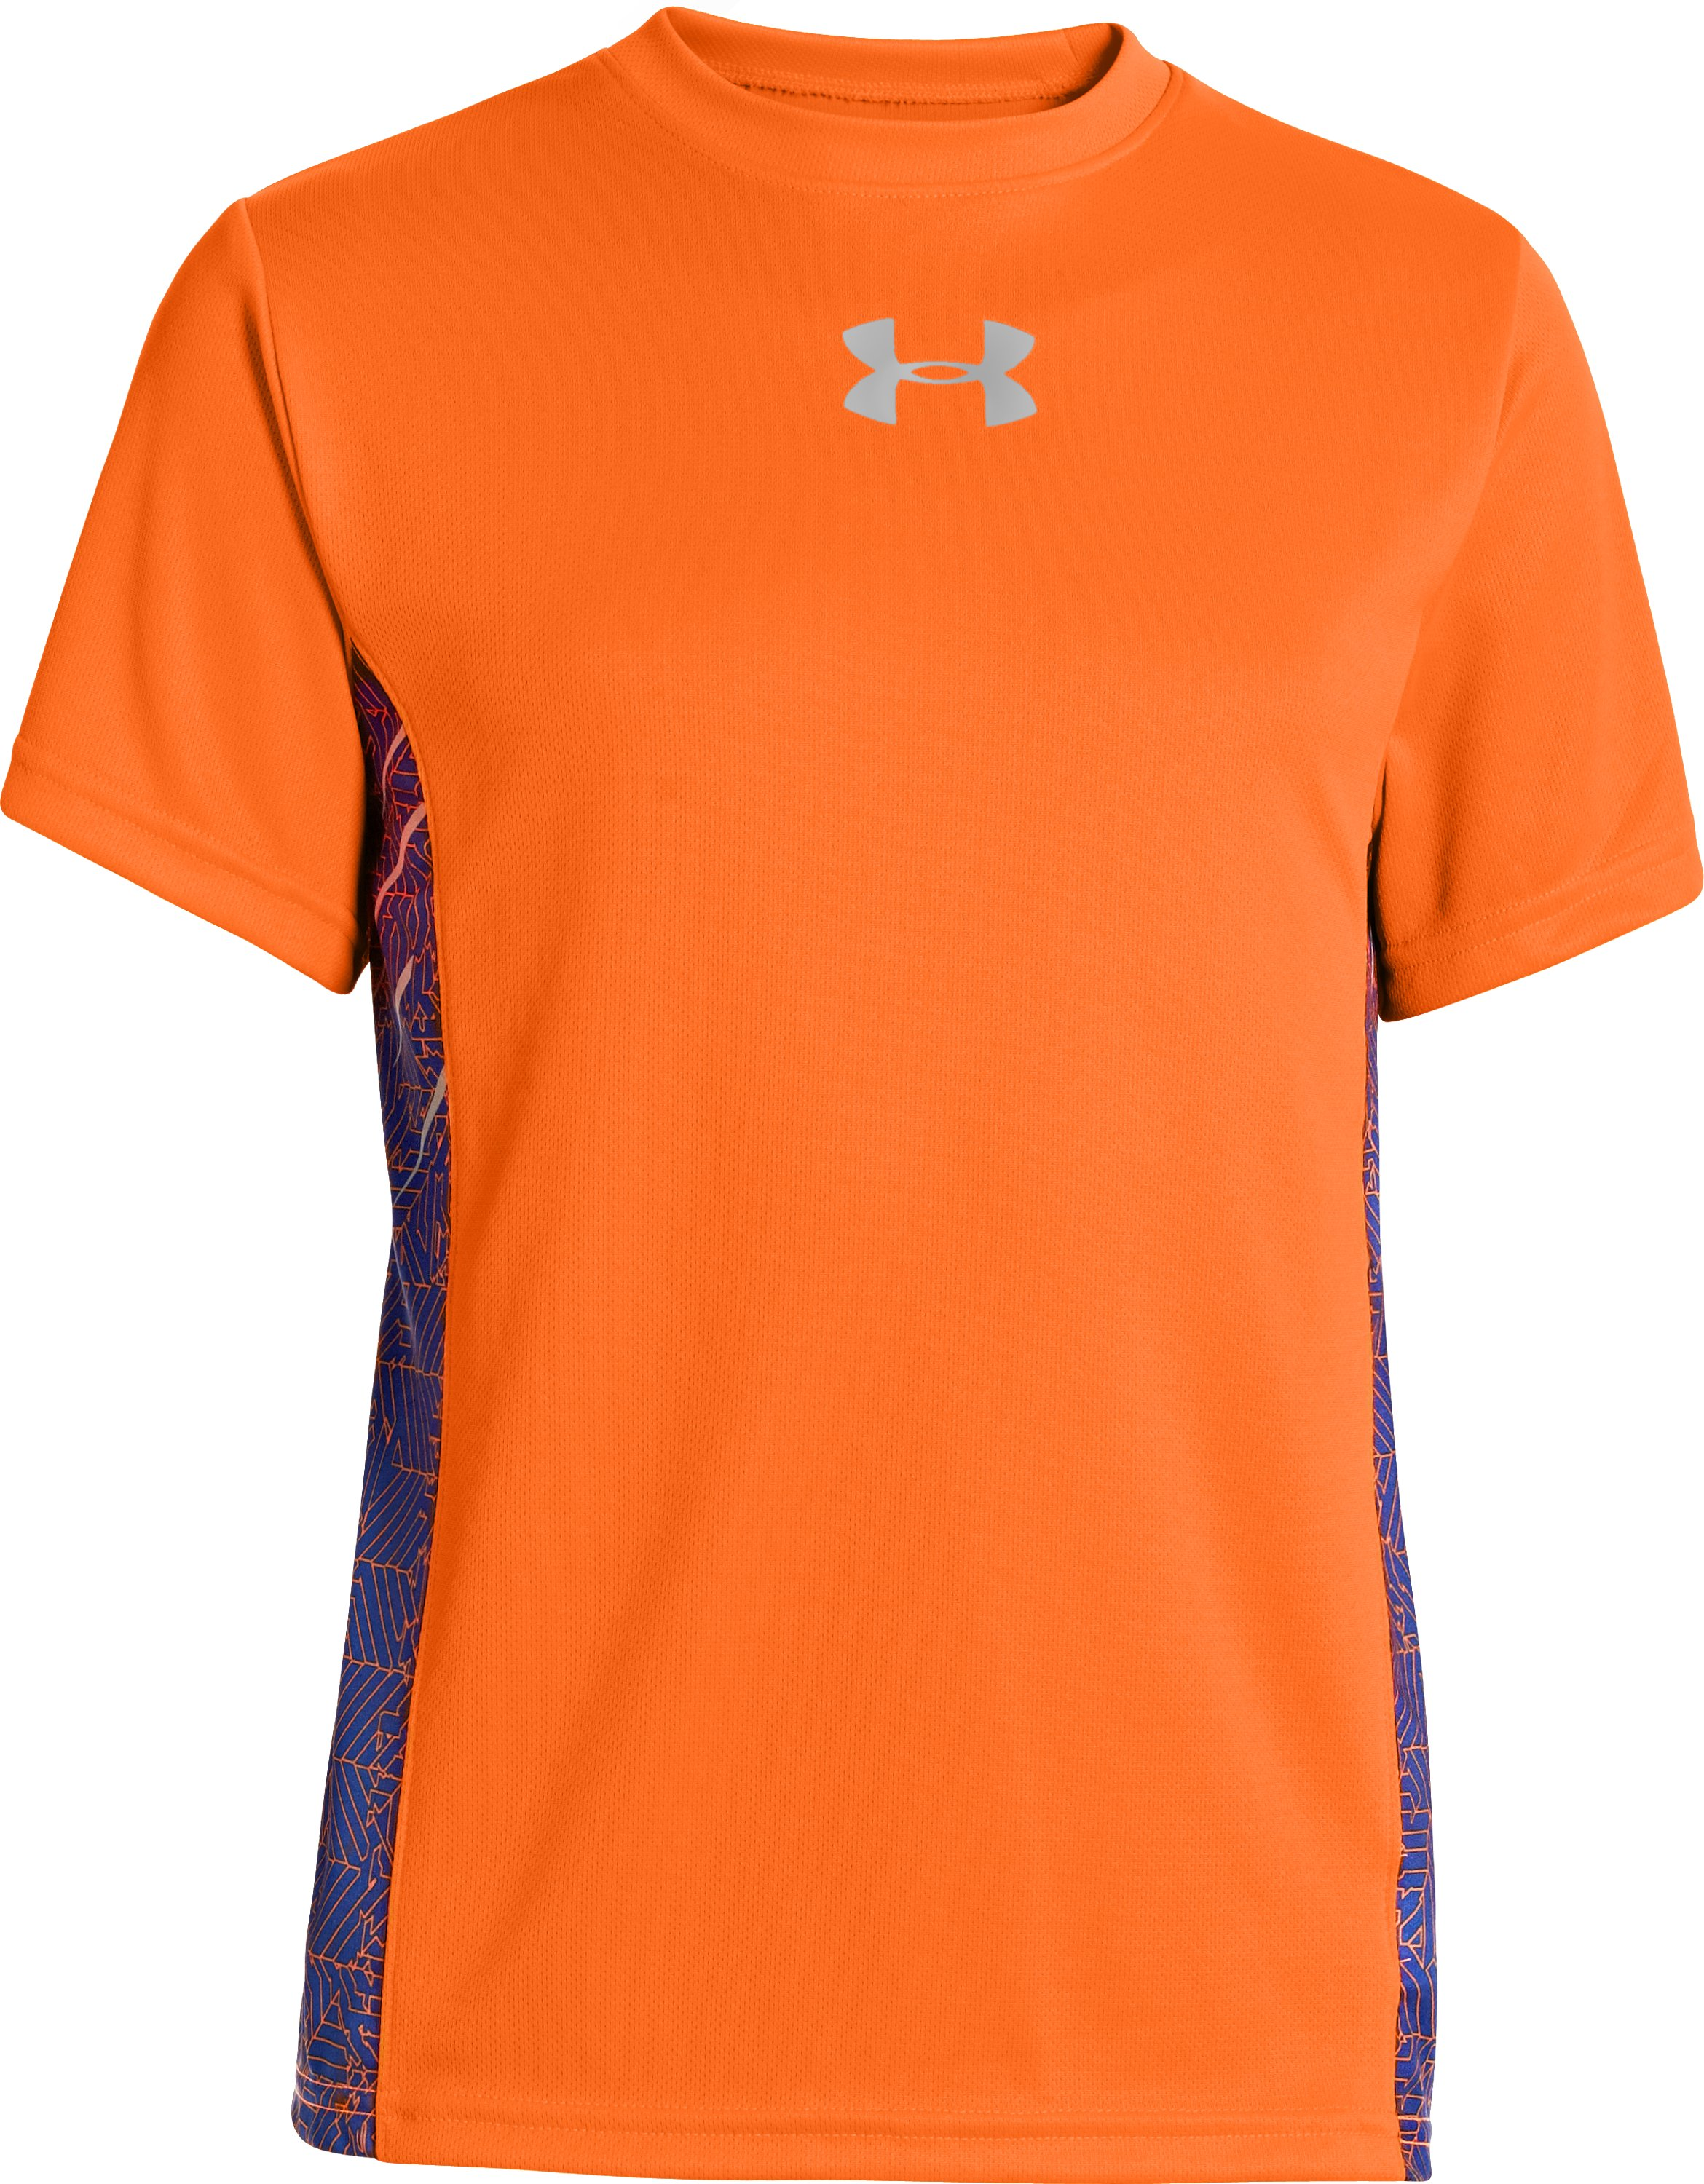 Boys' UA Watch Out Short Sleeve, Blaze Orange, zoomed image